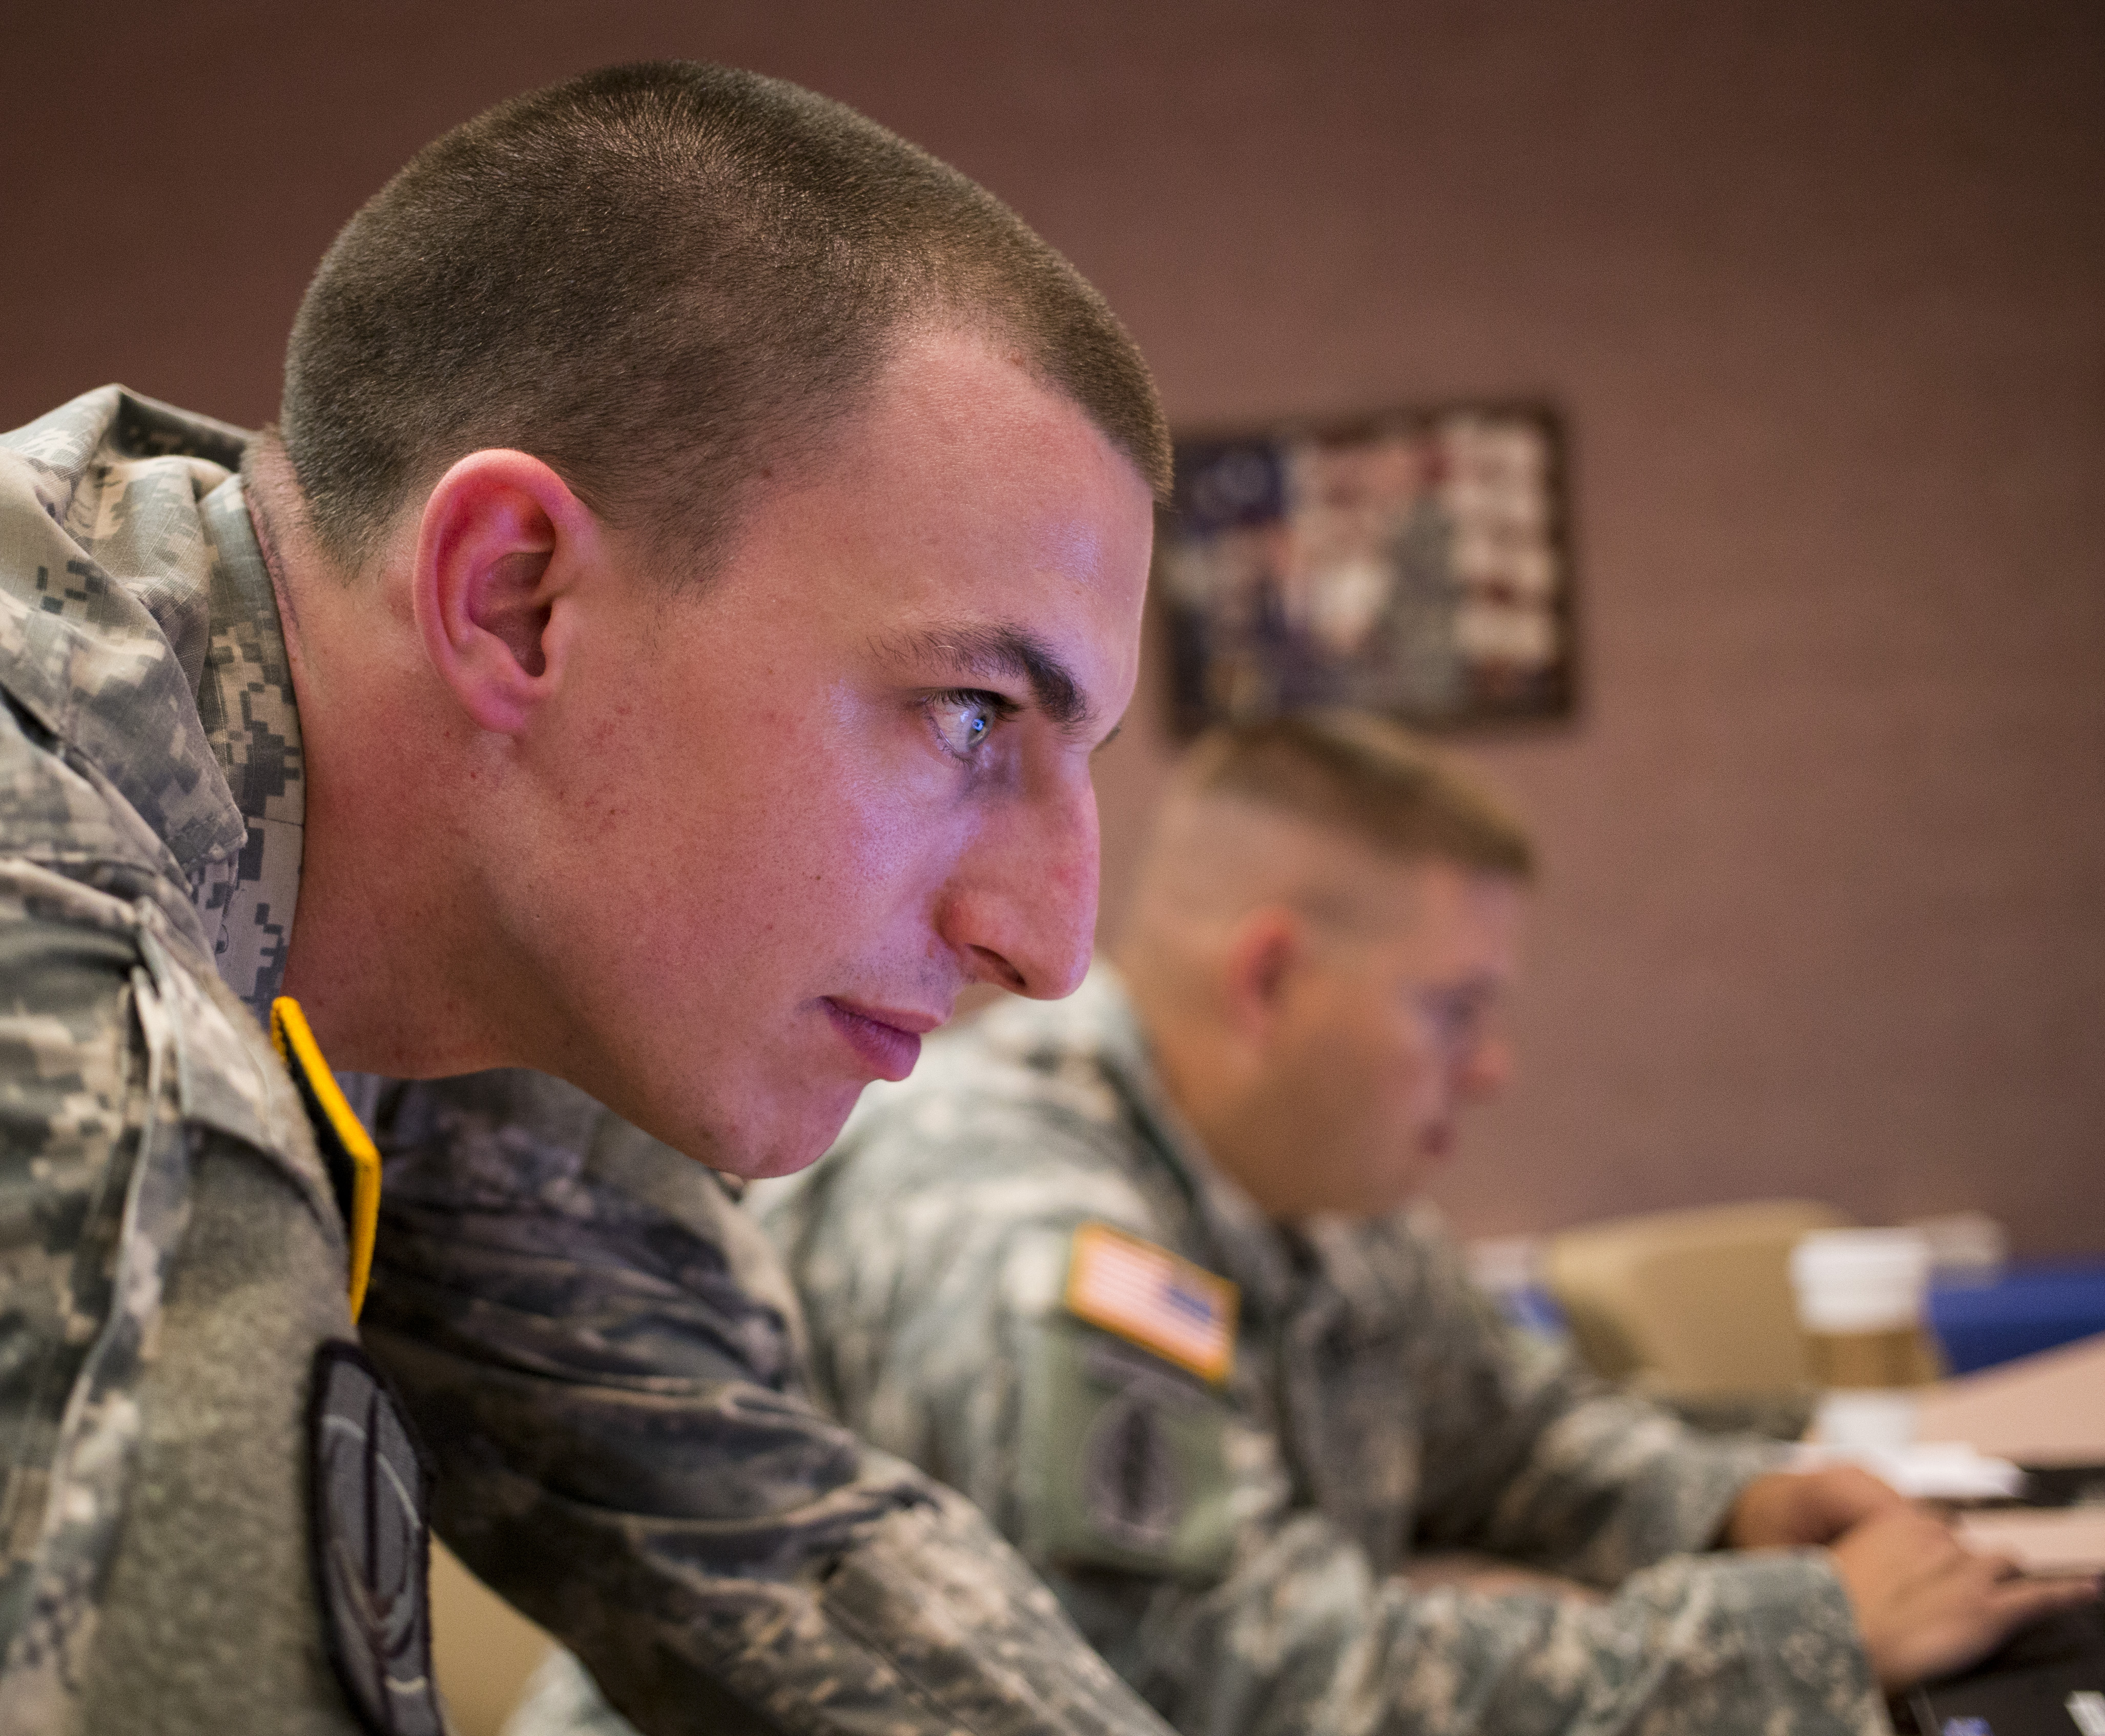 The Army's Cyber School is working to develop curricula to incorporate information operations. (Staff Sgt. Tracy J. Smith/Georgia Army National Guard)